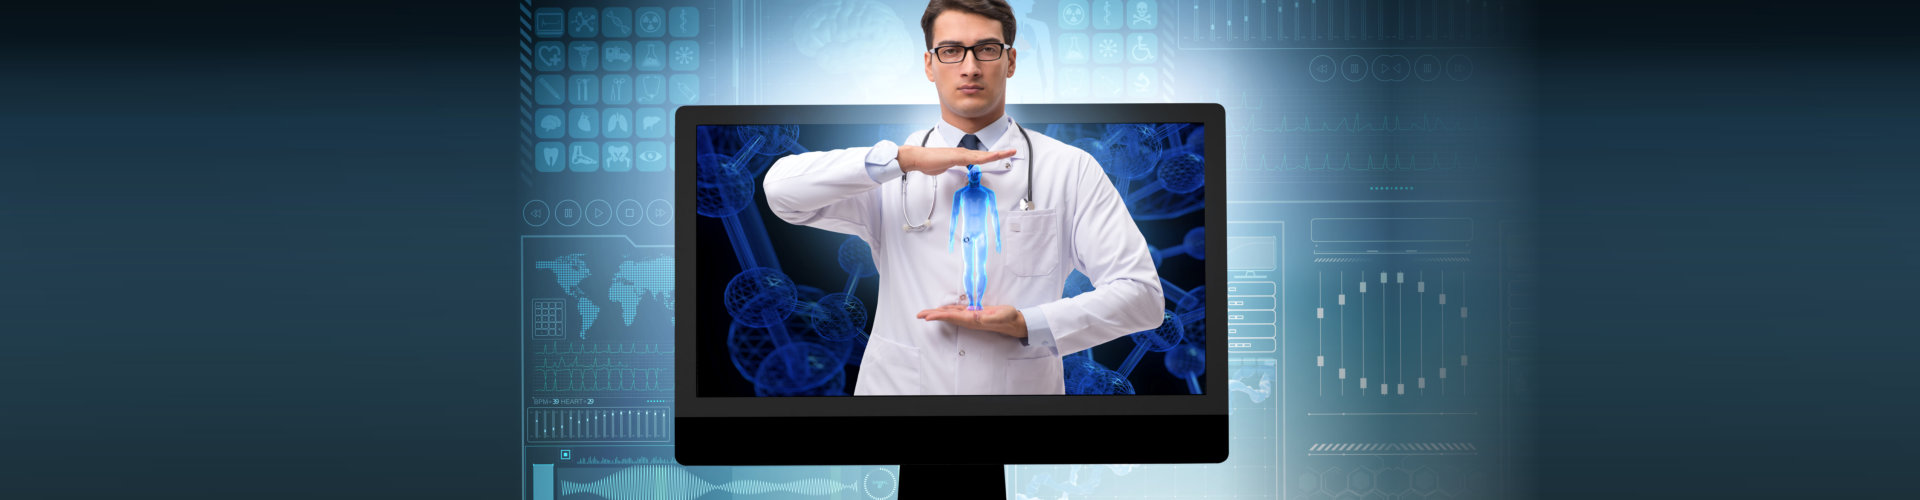 a doctor on a laptop screen holding a hologram of a human body